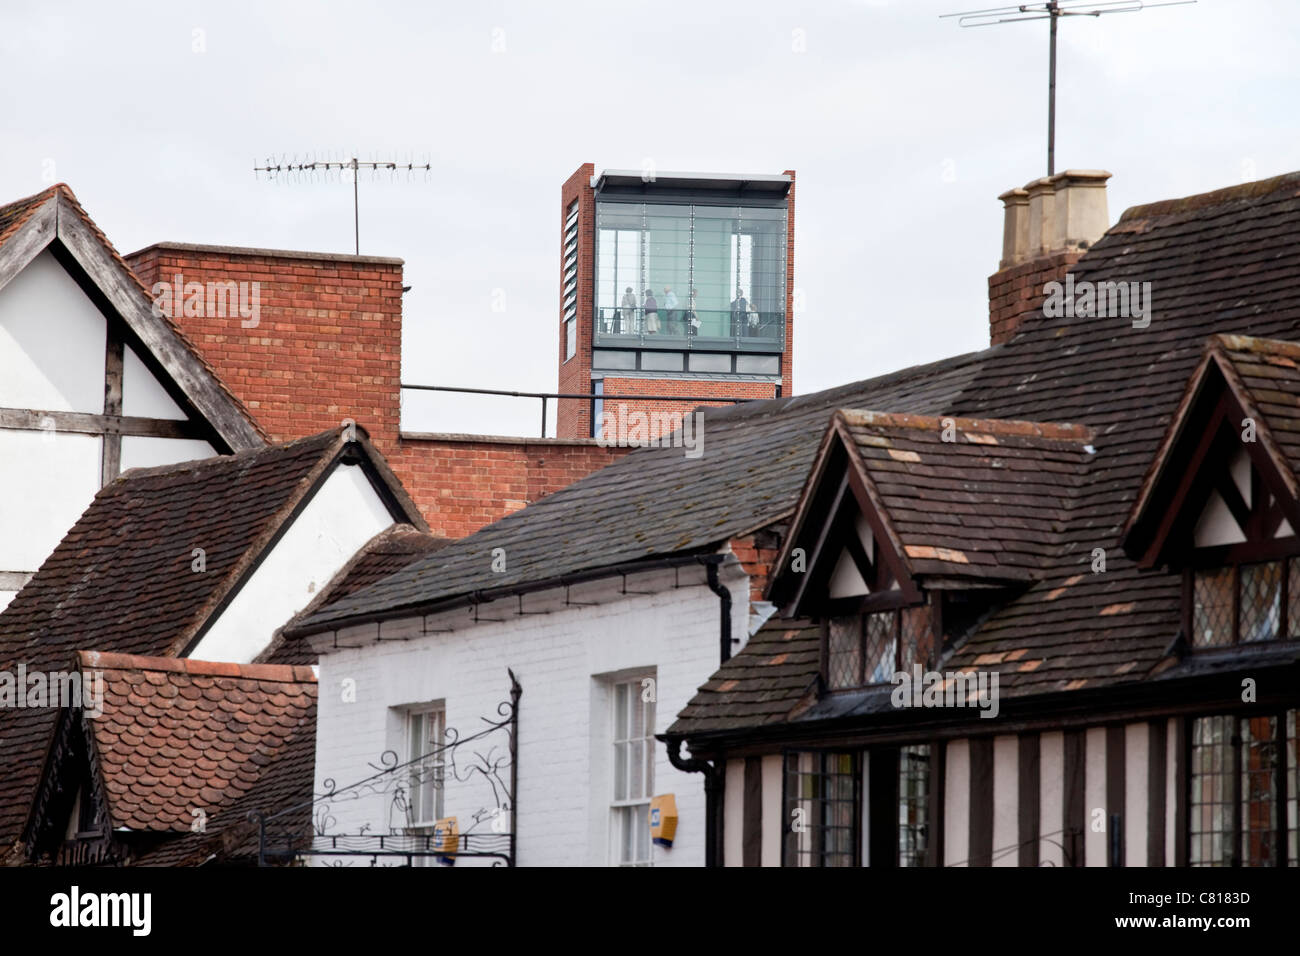 Visitors to the Royal Shakespeare Theatre in Stratford-Upon-Avon, UK, at the top of the tower built in 2011. - Stock Image